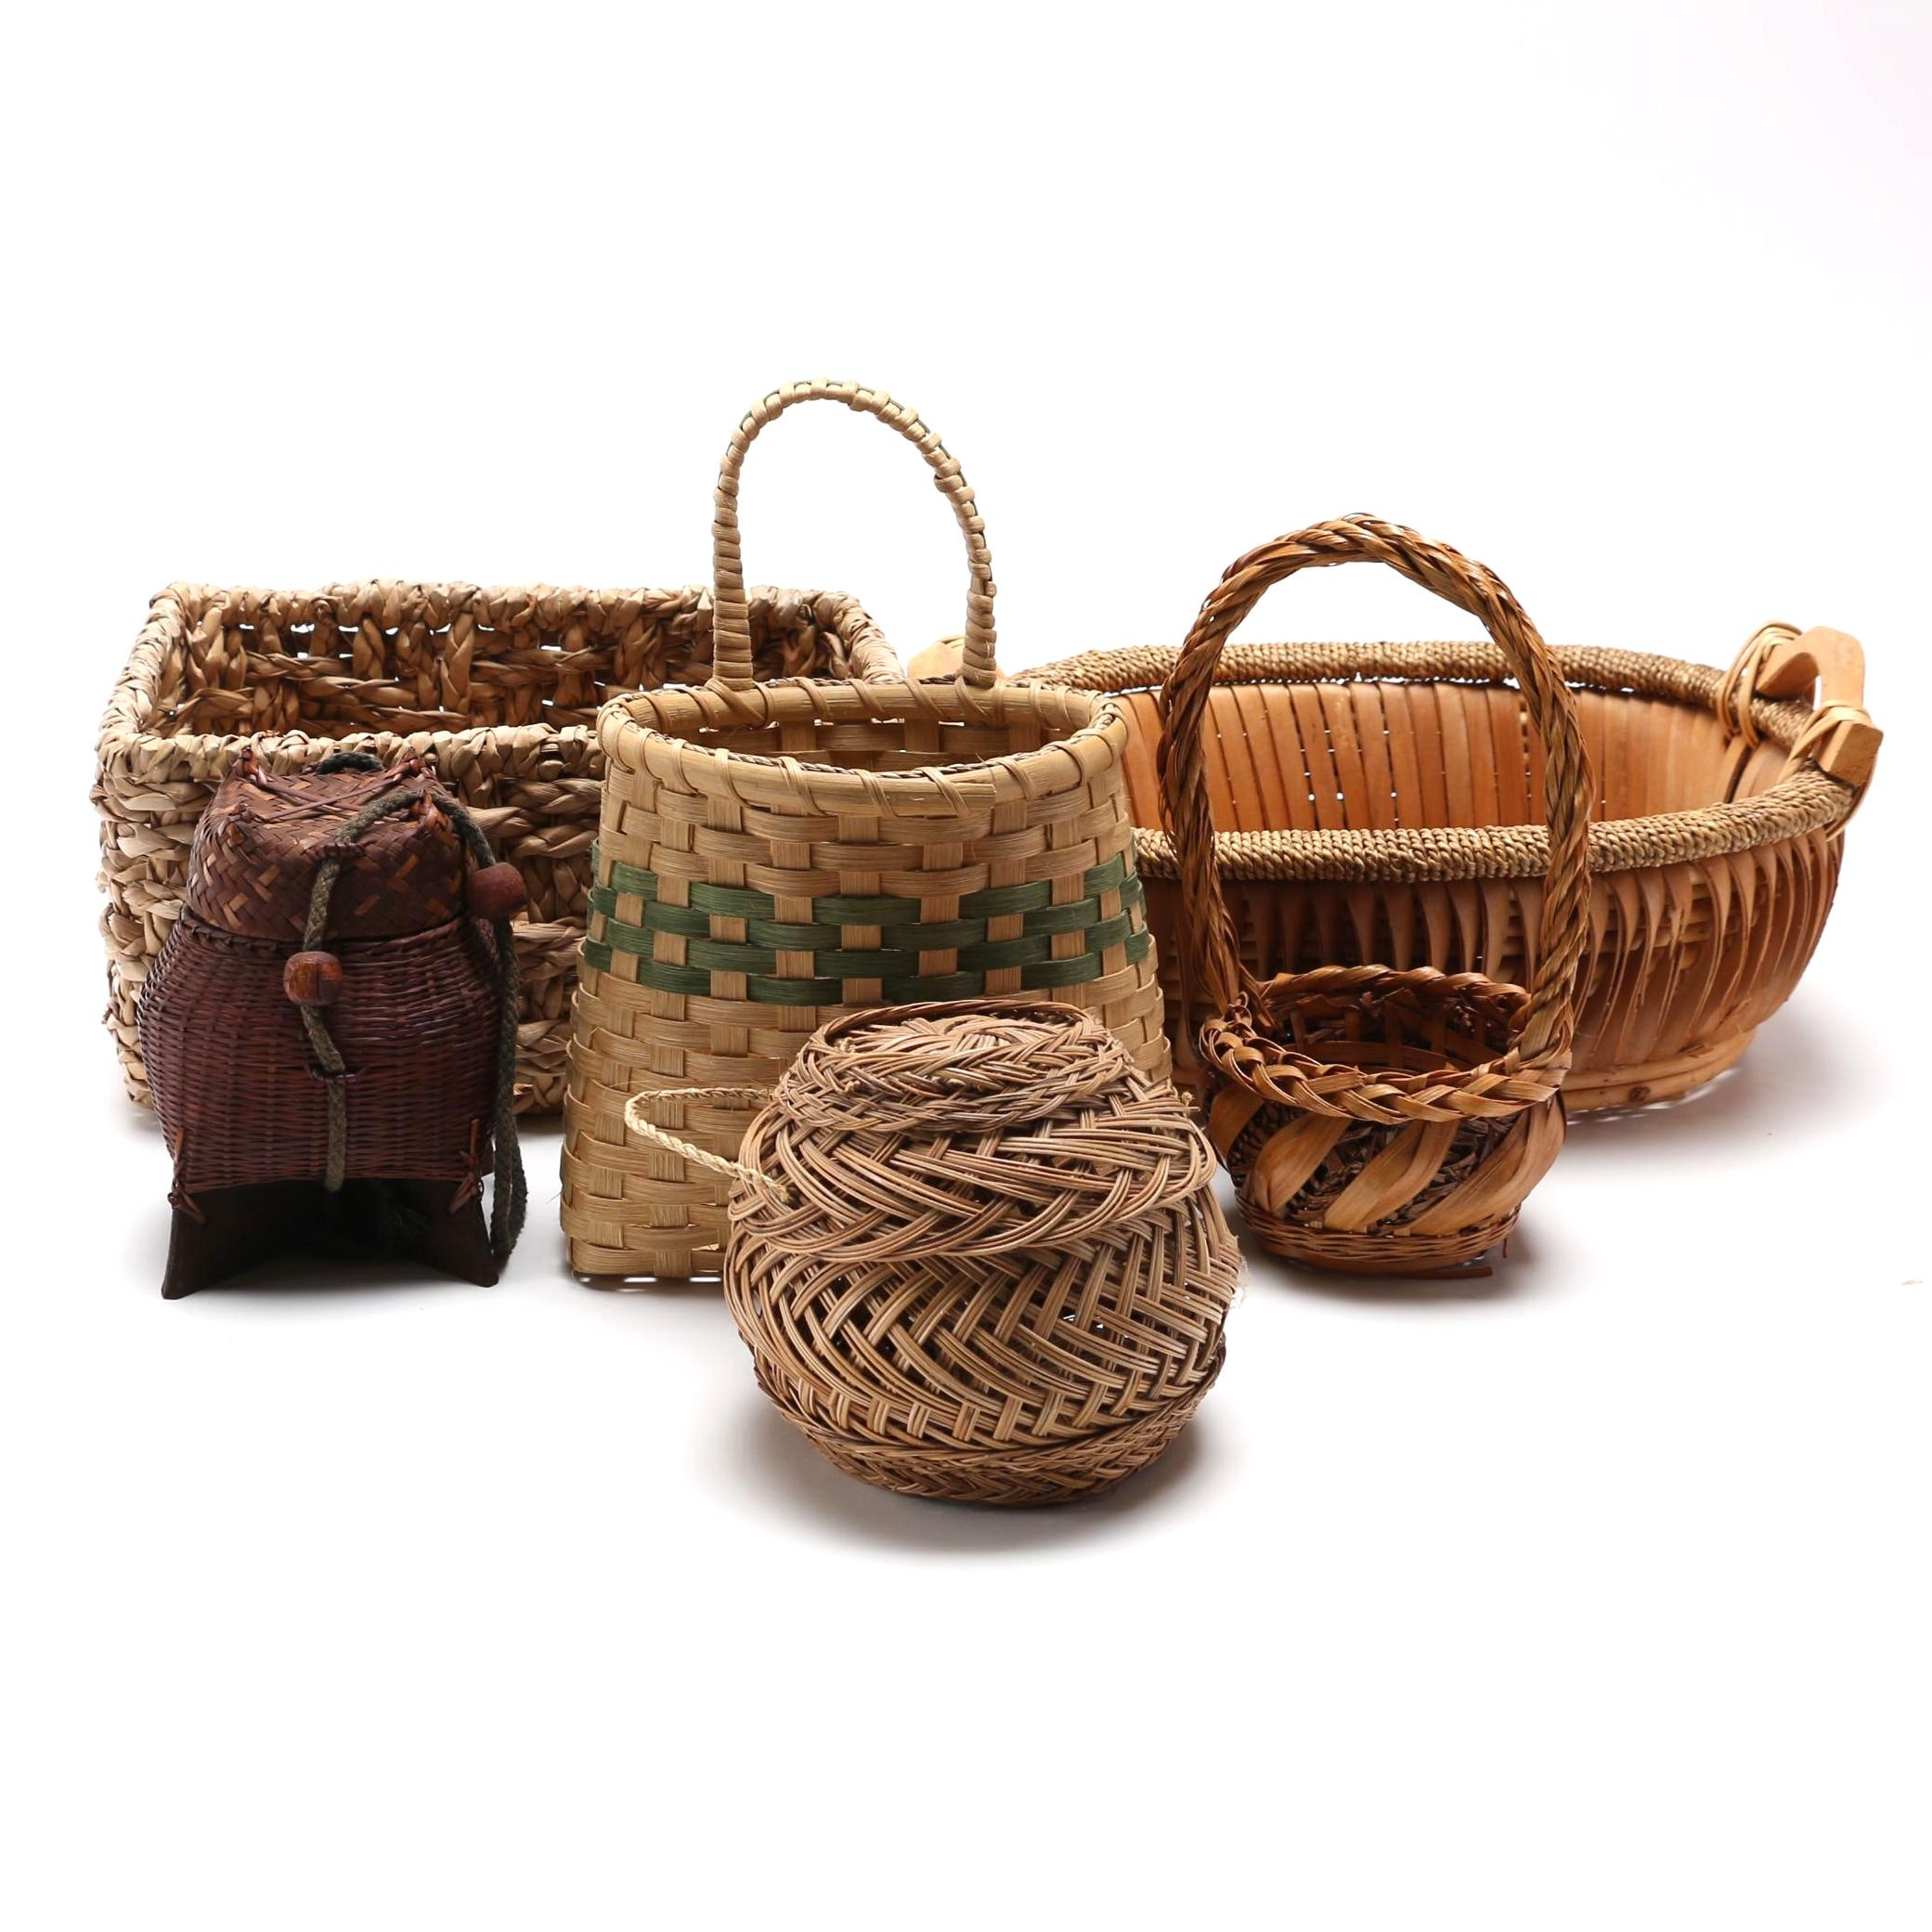 Assortment of Ornate Baskets